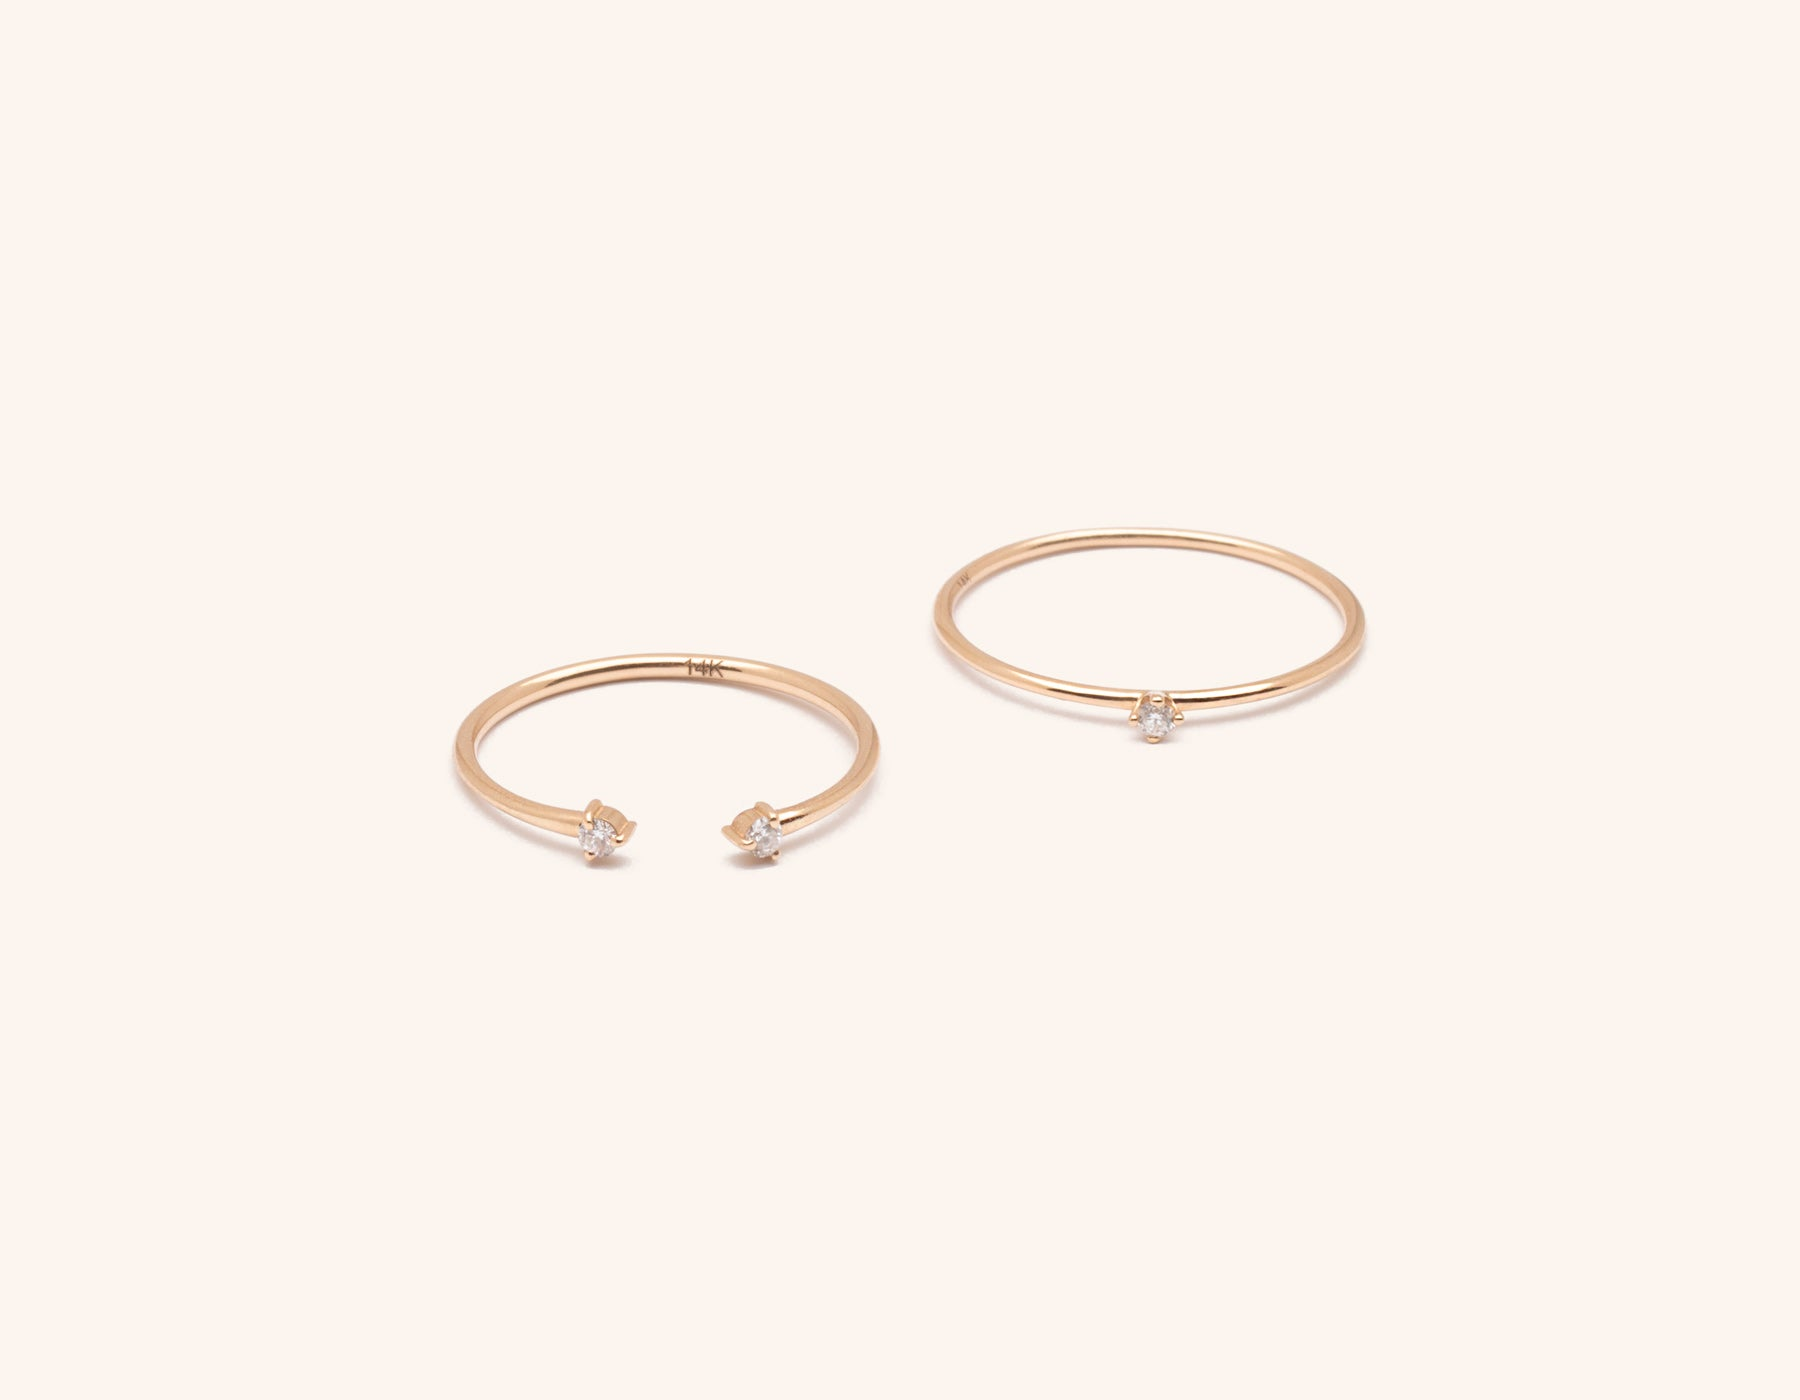 Vrai & Oro modern minimalist Diamond Constellation Stack rings round stacker with diamond dot cuff, 14K Rose Gold